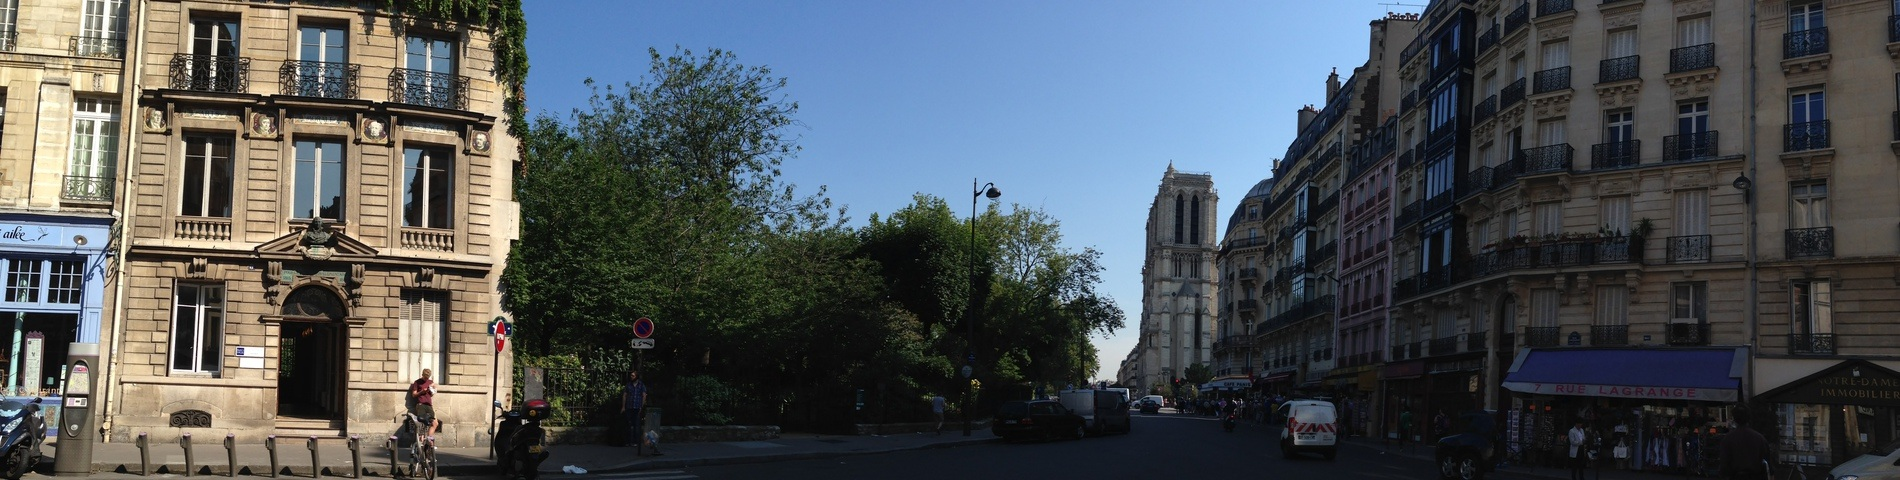 France Langue Paris Notre Dame Bild 1